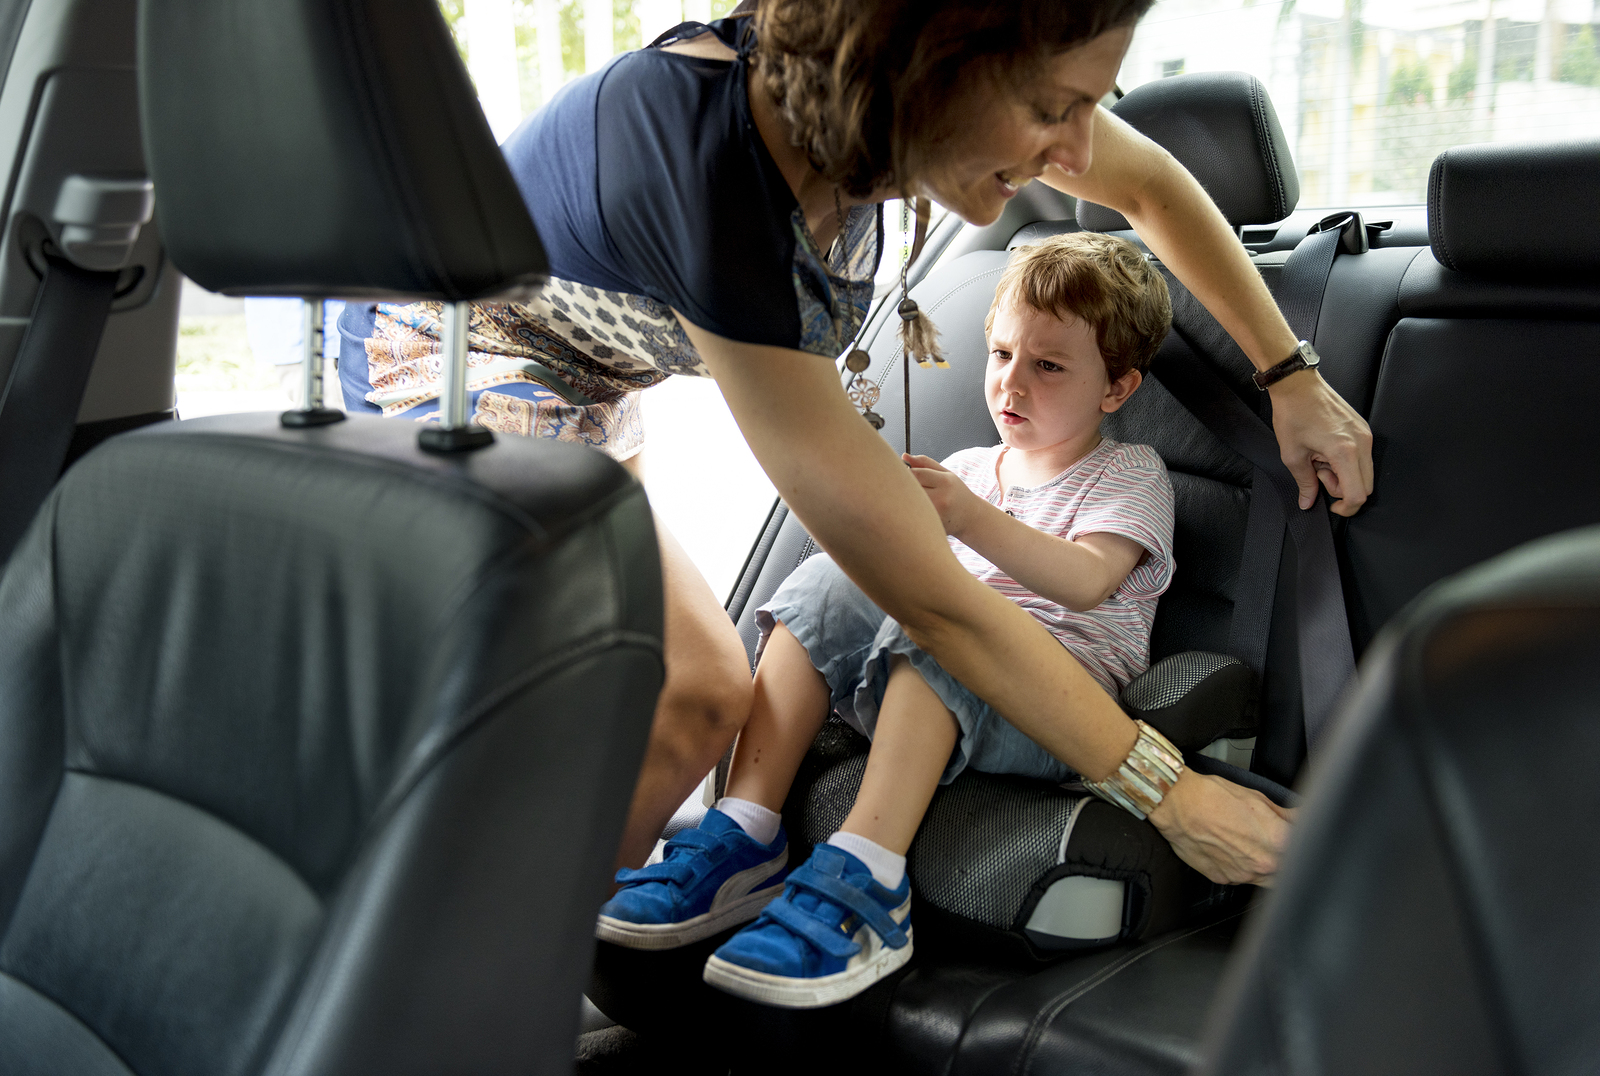 Study: Buckling Up Could Save Over 200 Children Each Year